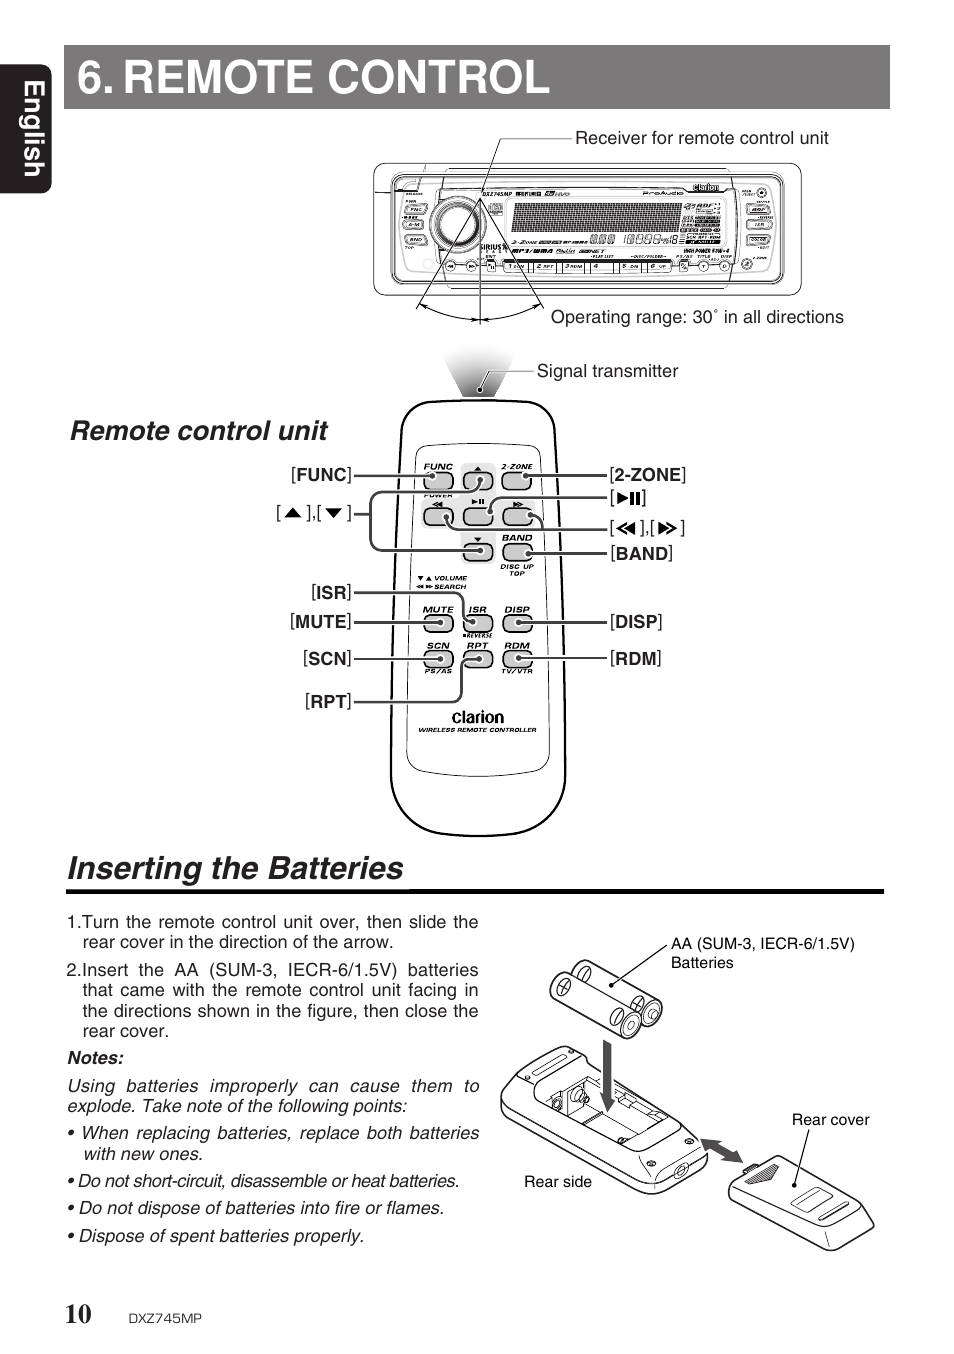 remote control inserting the batteries english clarion dxz745mp rh manualsdir com O-Ring Installation Guide Honeywell Thermostat Installation Manual